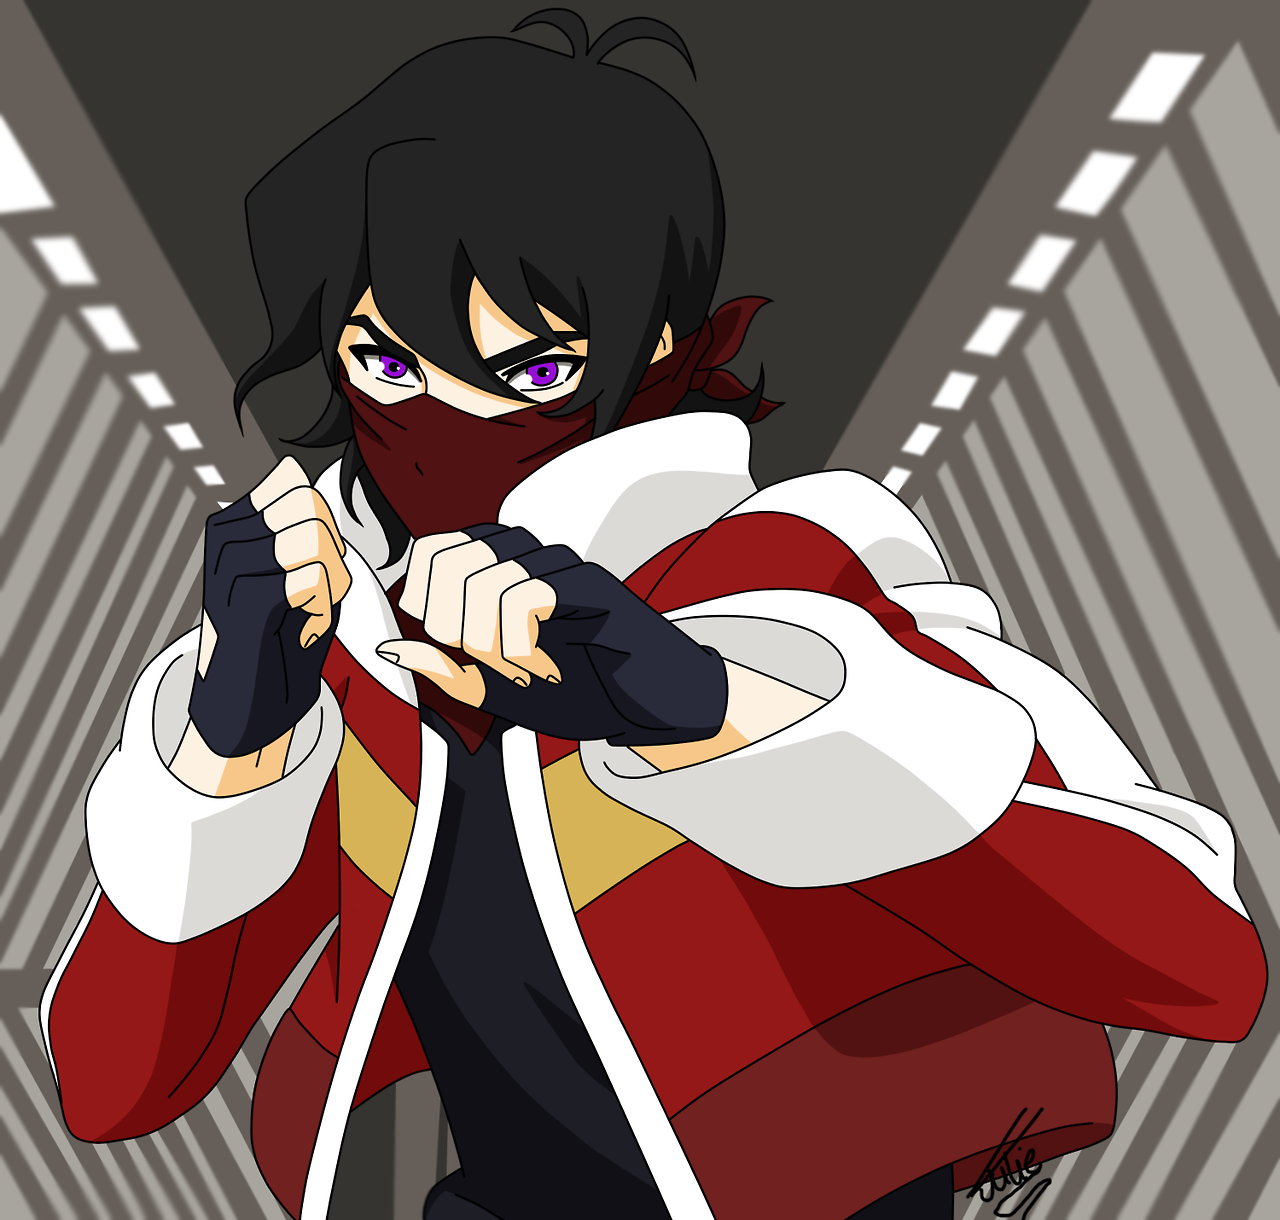 Keith in karate action fight from Voltron Legendary Defender